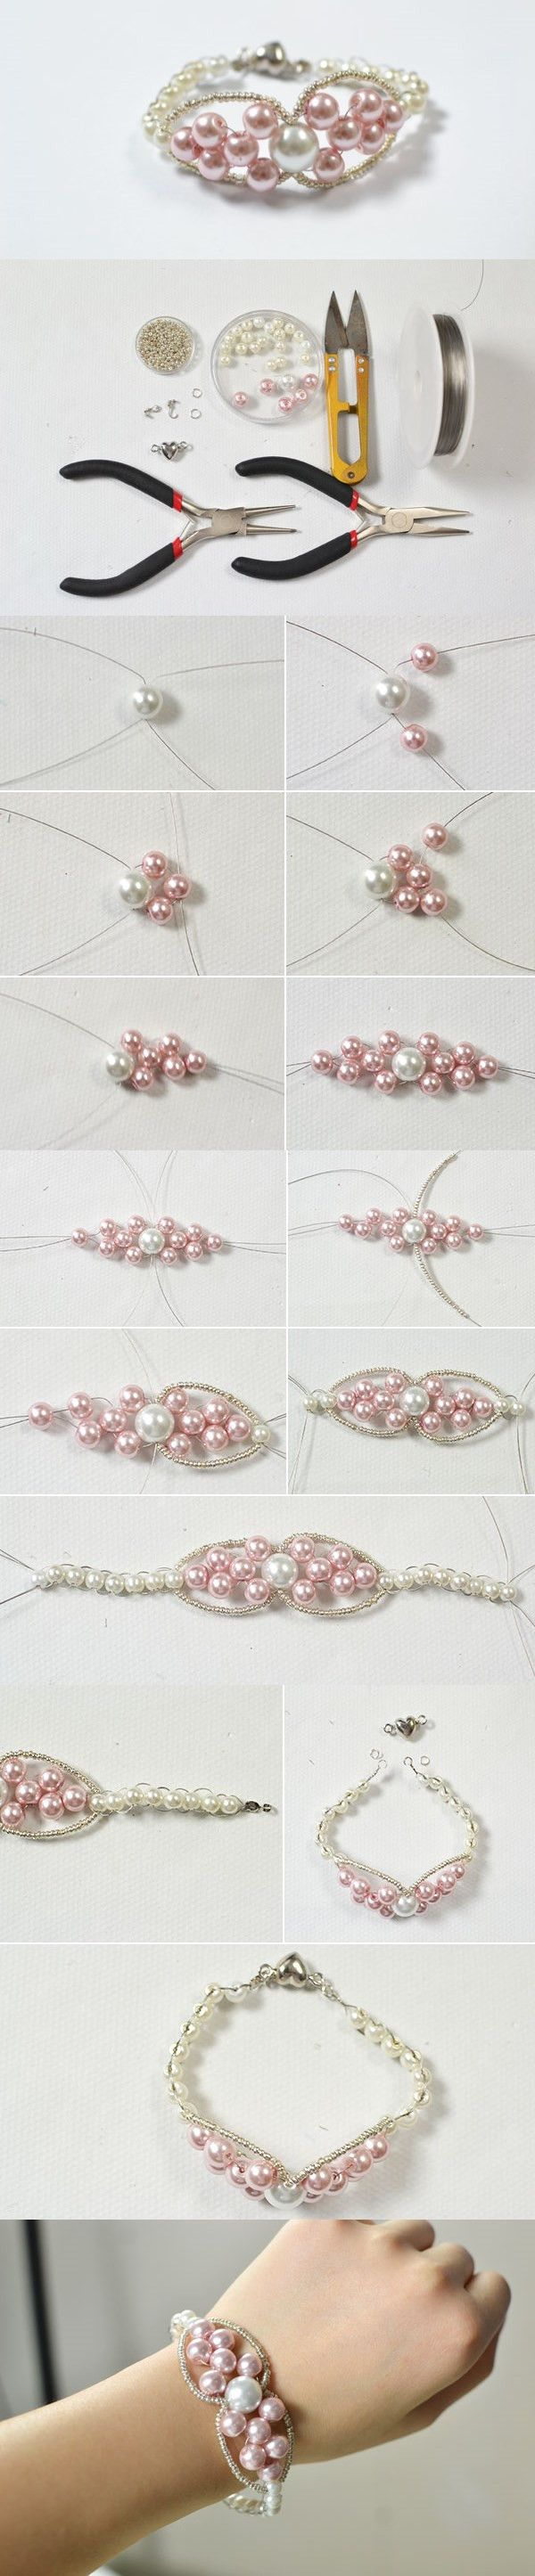 Making Chic and Elegant Pearl Beaded Bracelet